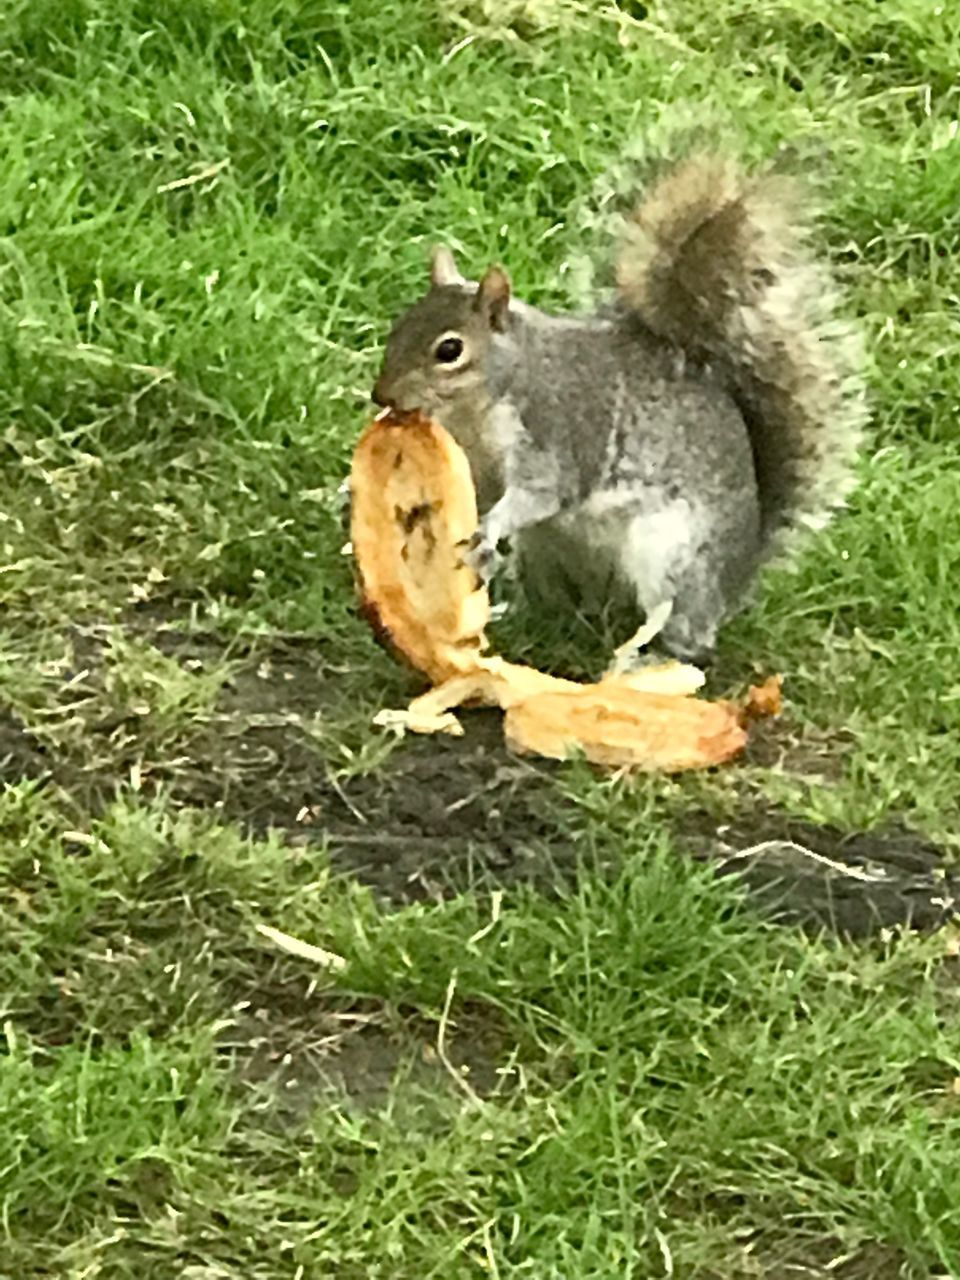 grass, animal themes, one animal, animals in the wild, outdoors, nature, no people, animal wildlife, day, green color, eating, food and drink, bird, squirrel, food, close-up, mammal